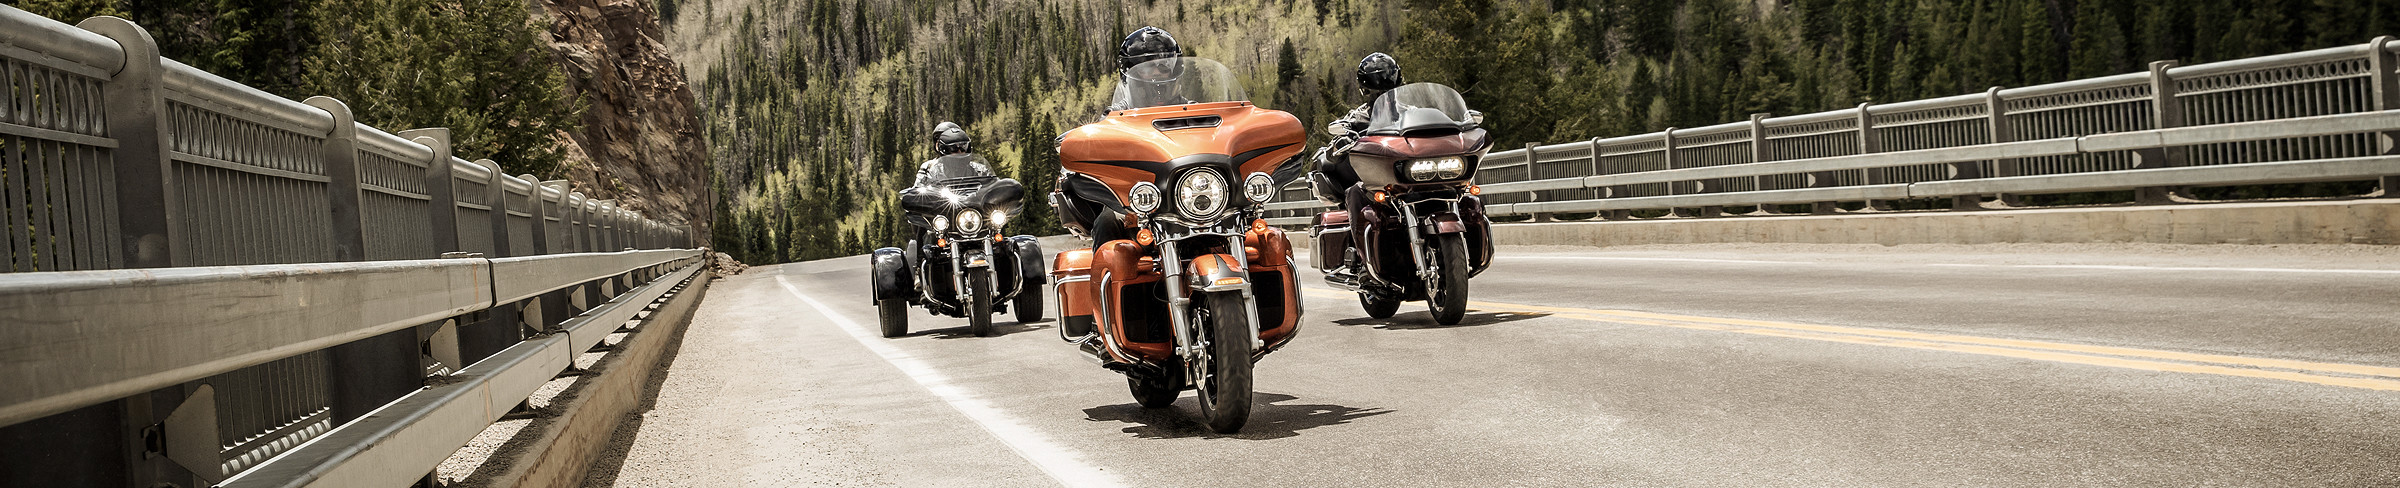 New Harley-Davidson Touring Motorcycles for sale near Canton, Ohio